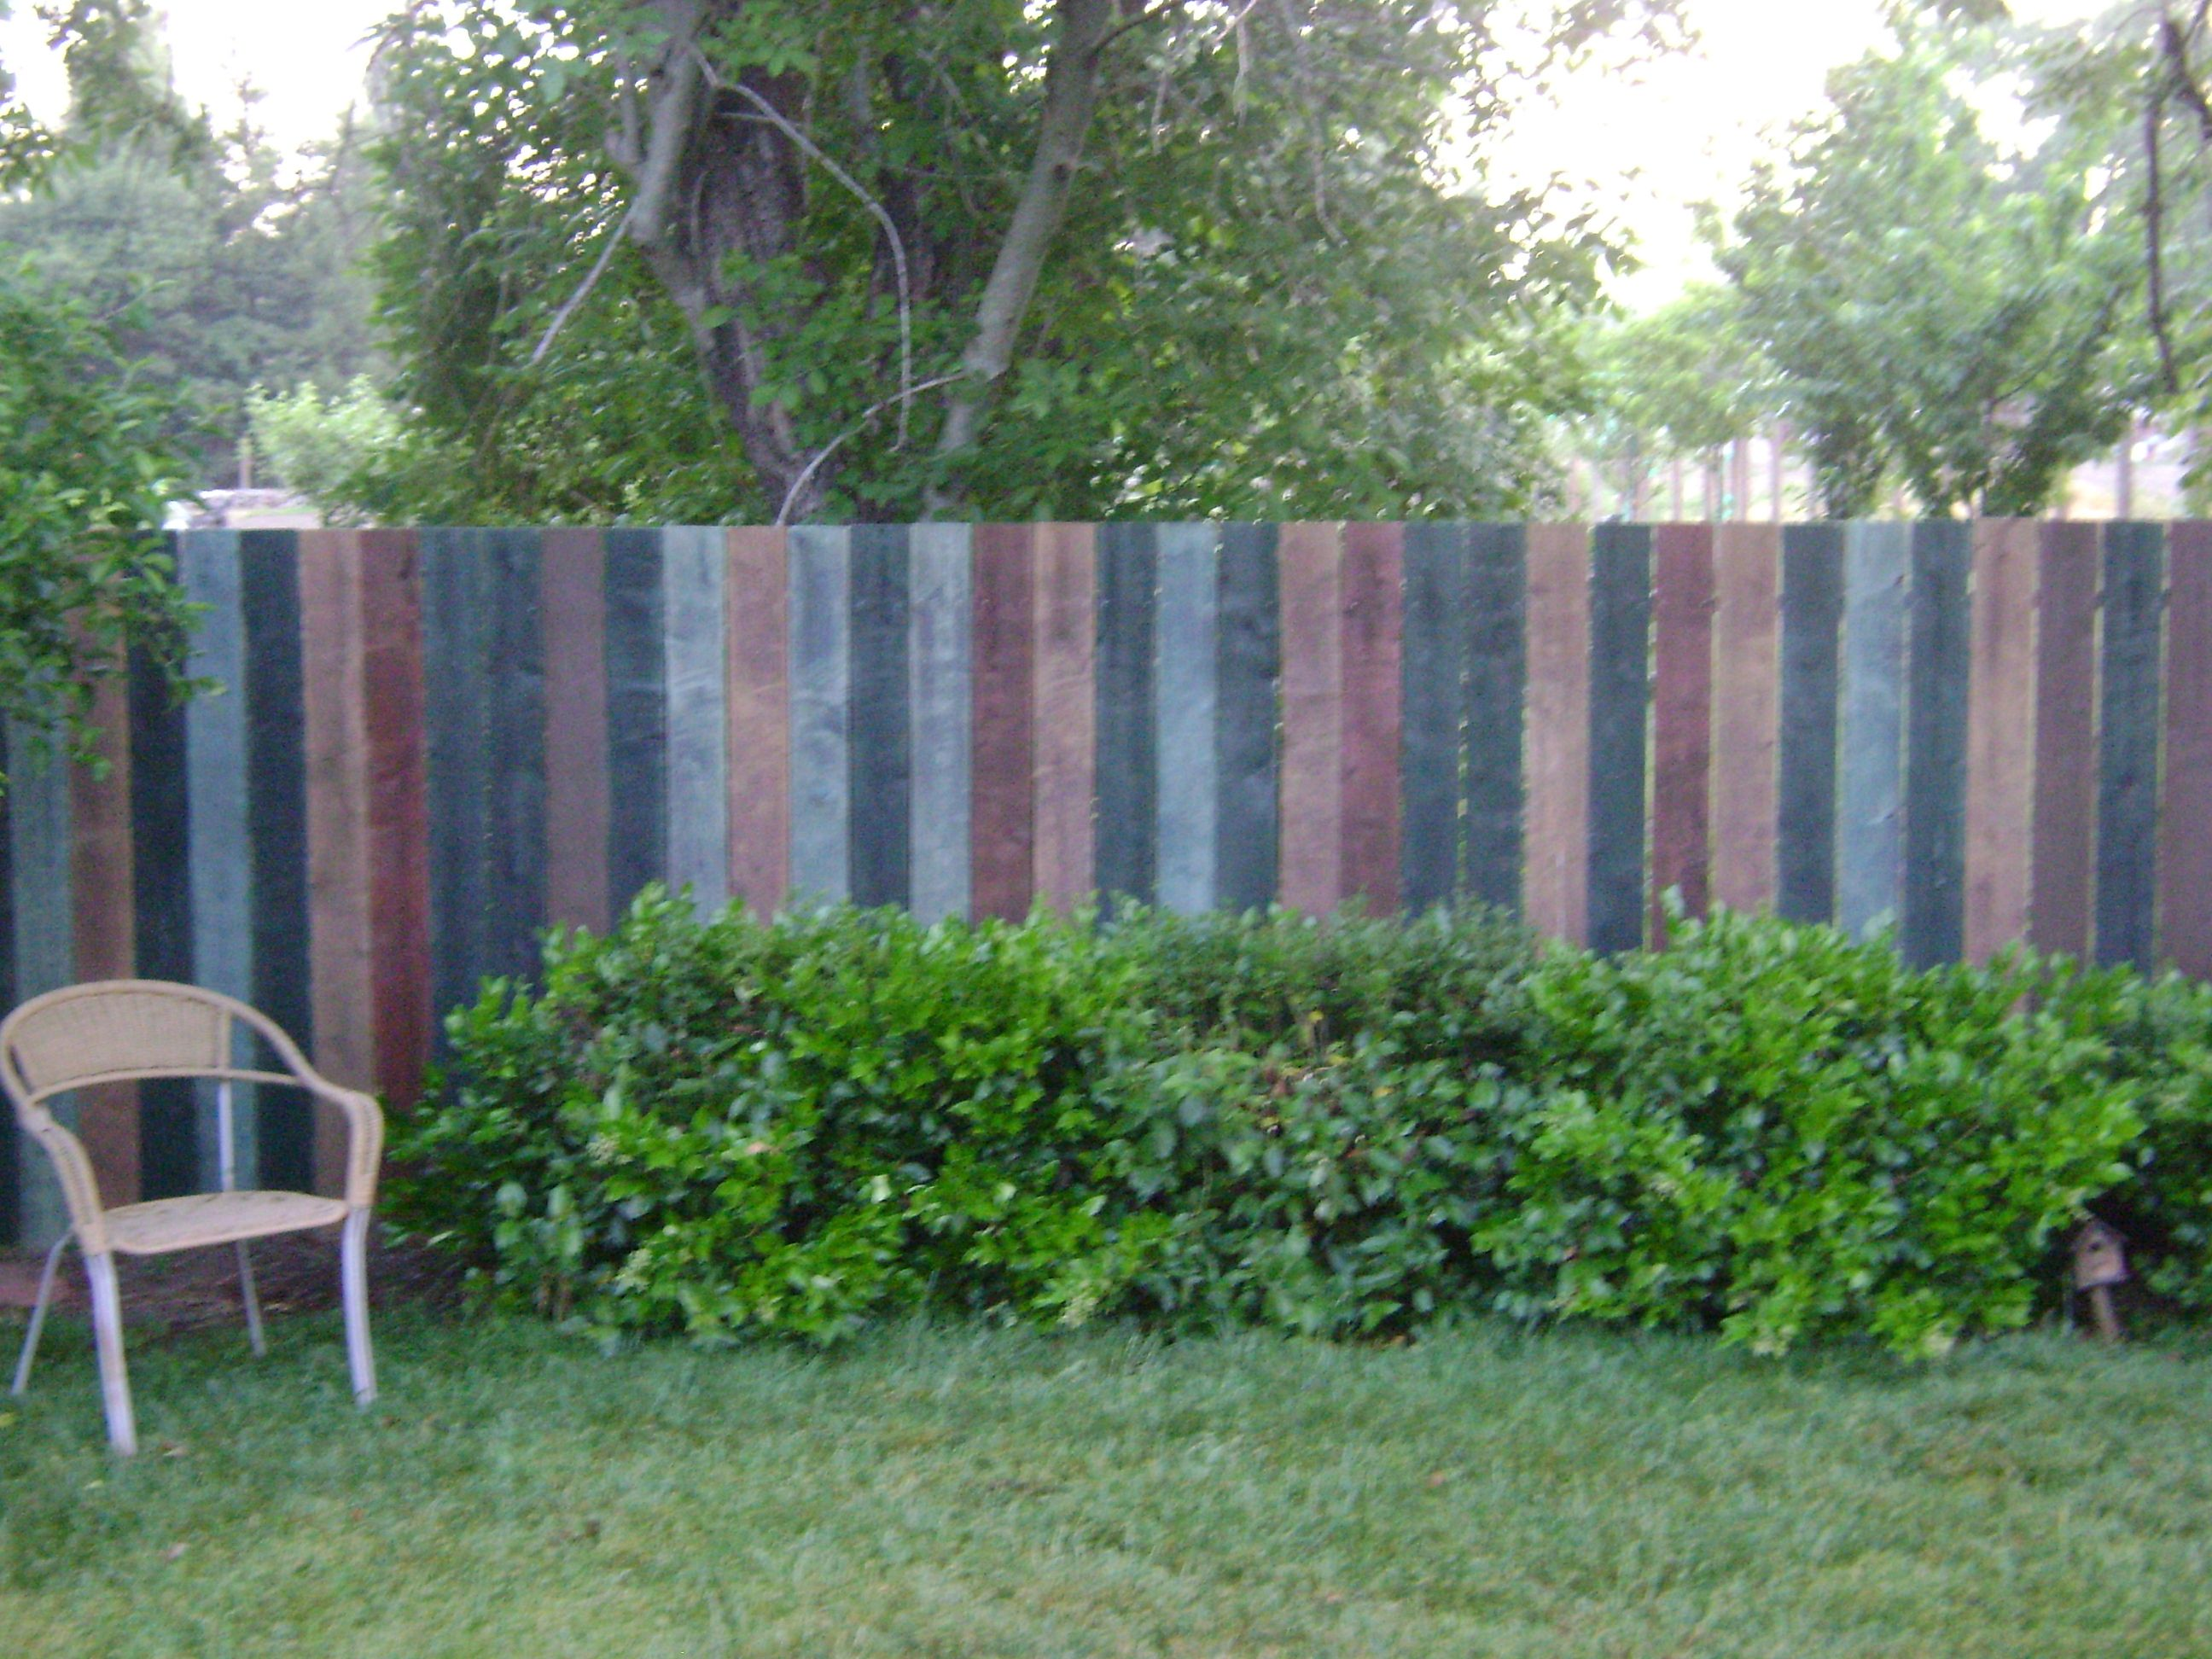 Minwax Stained Fence Fence Paint Fence Stain Garden Wall